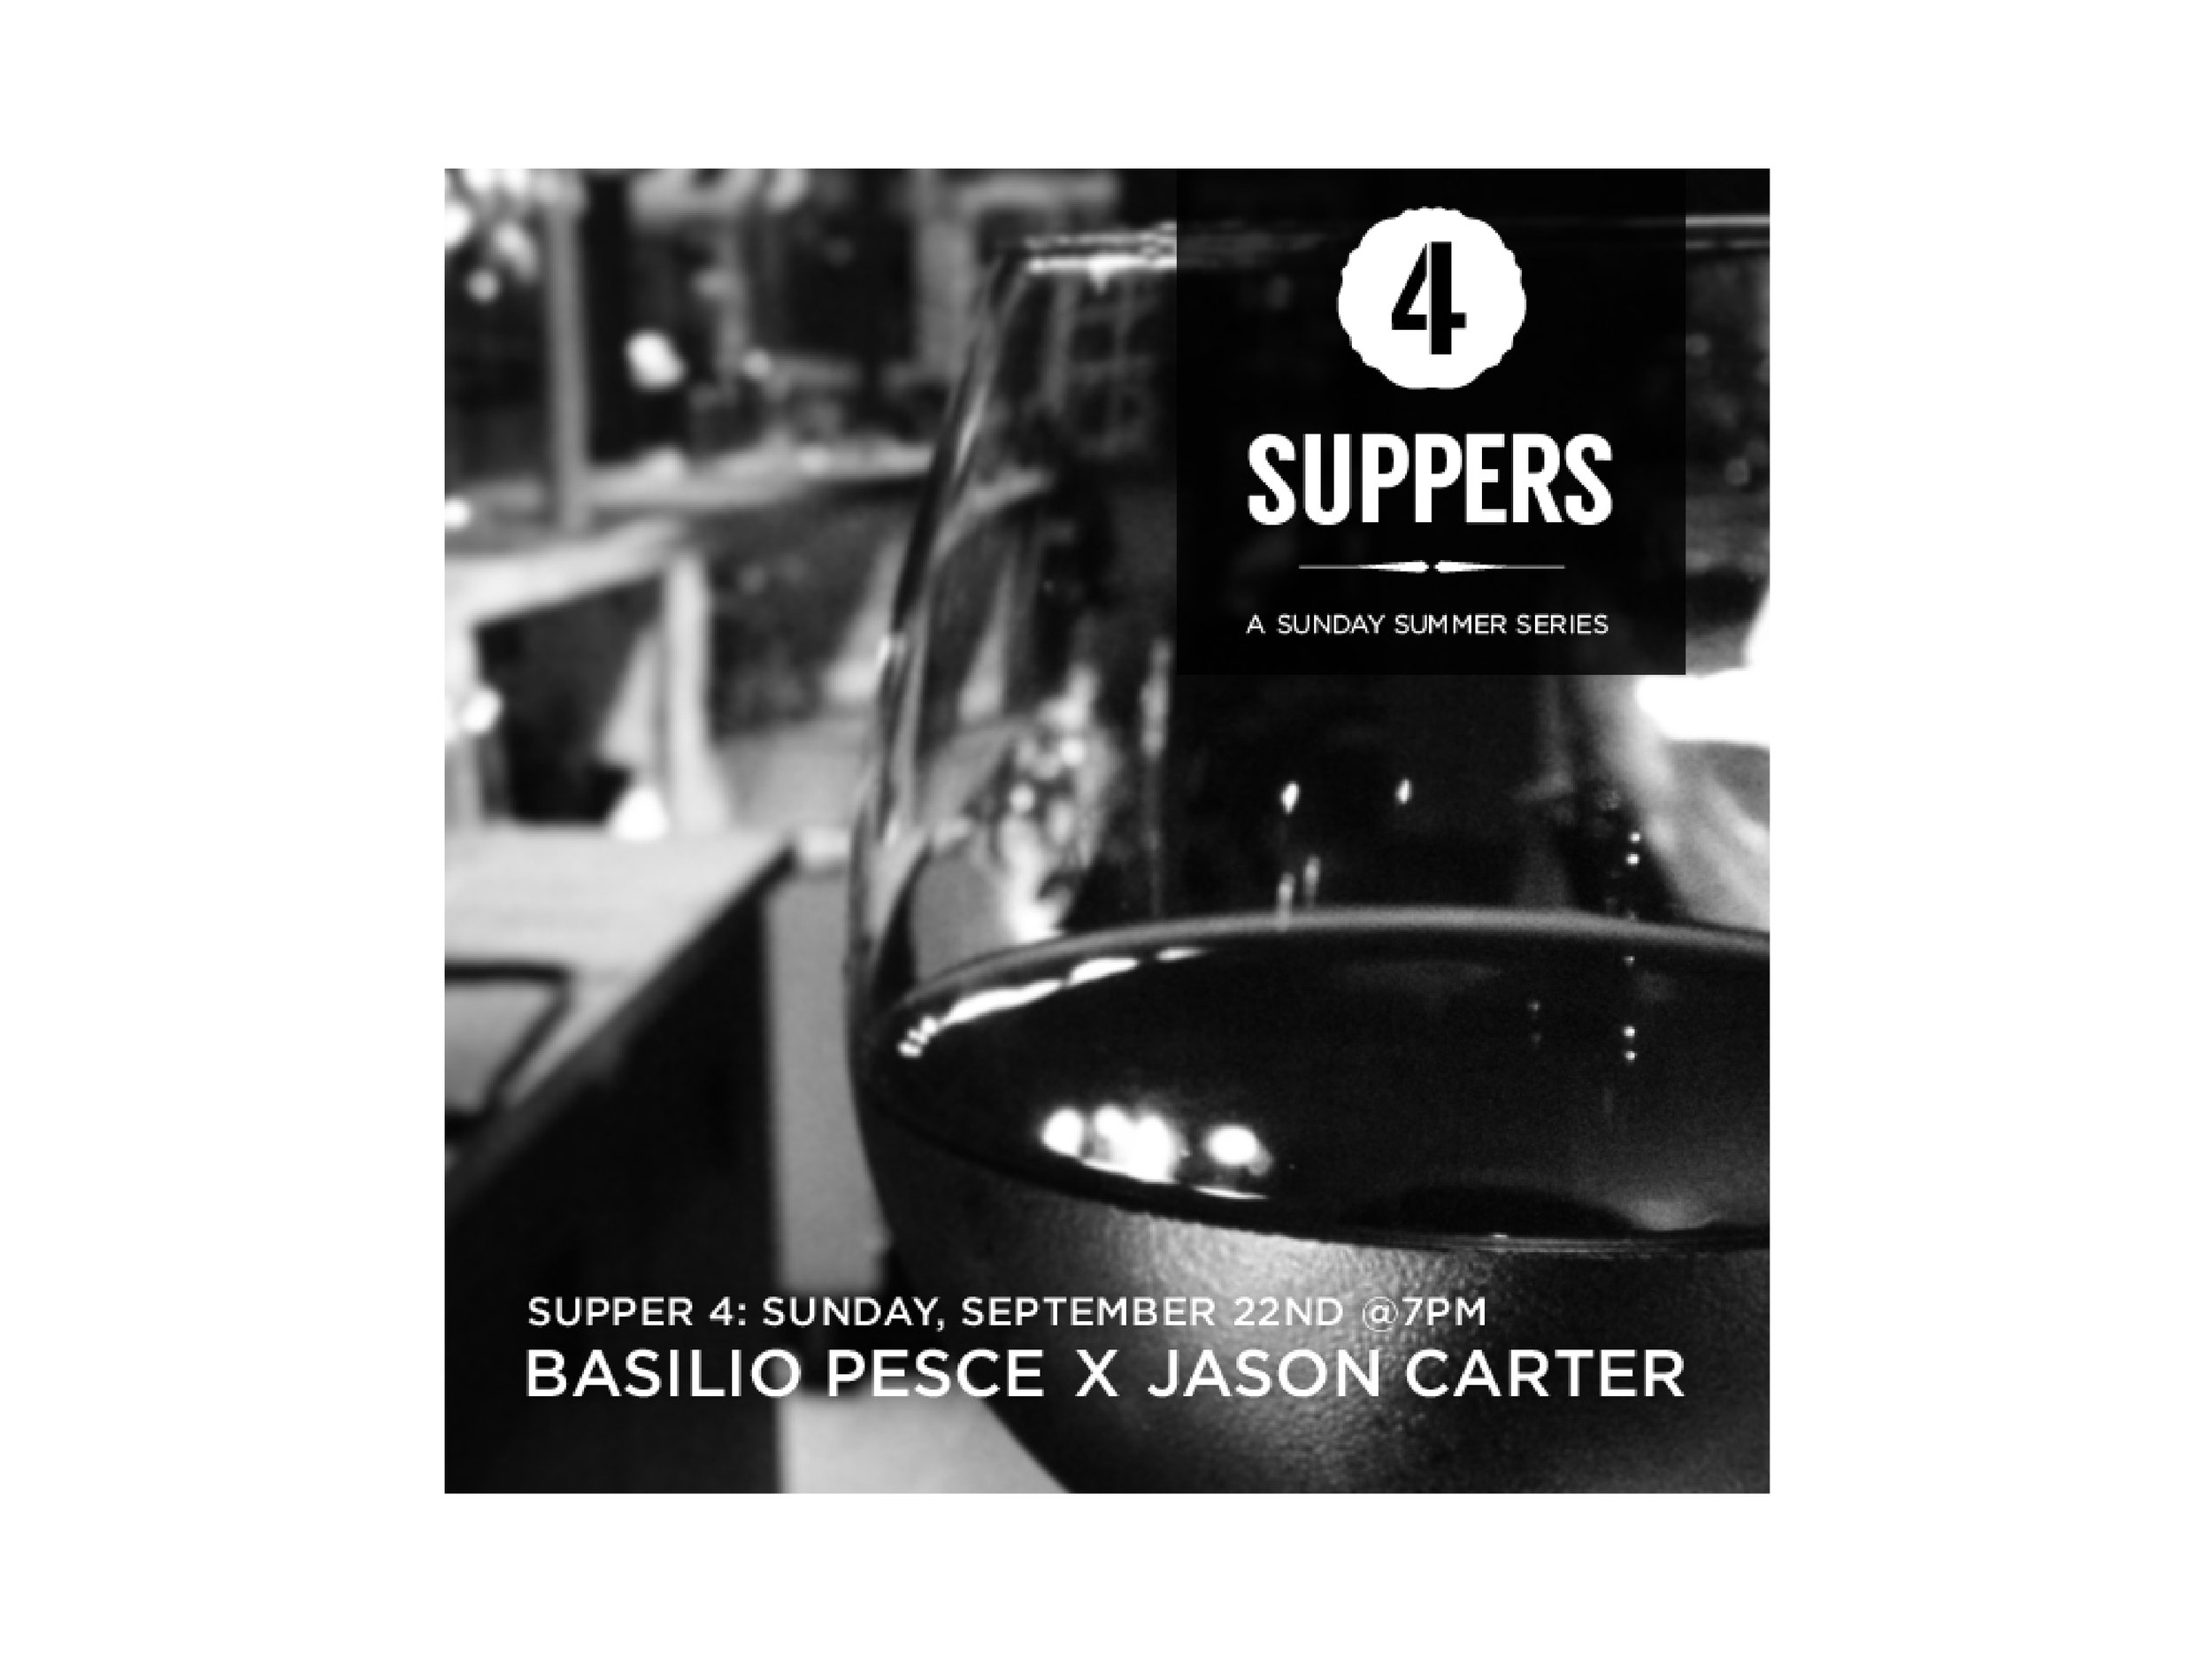 4suppers4-01.jpg